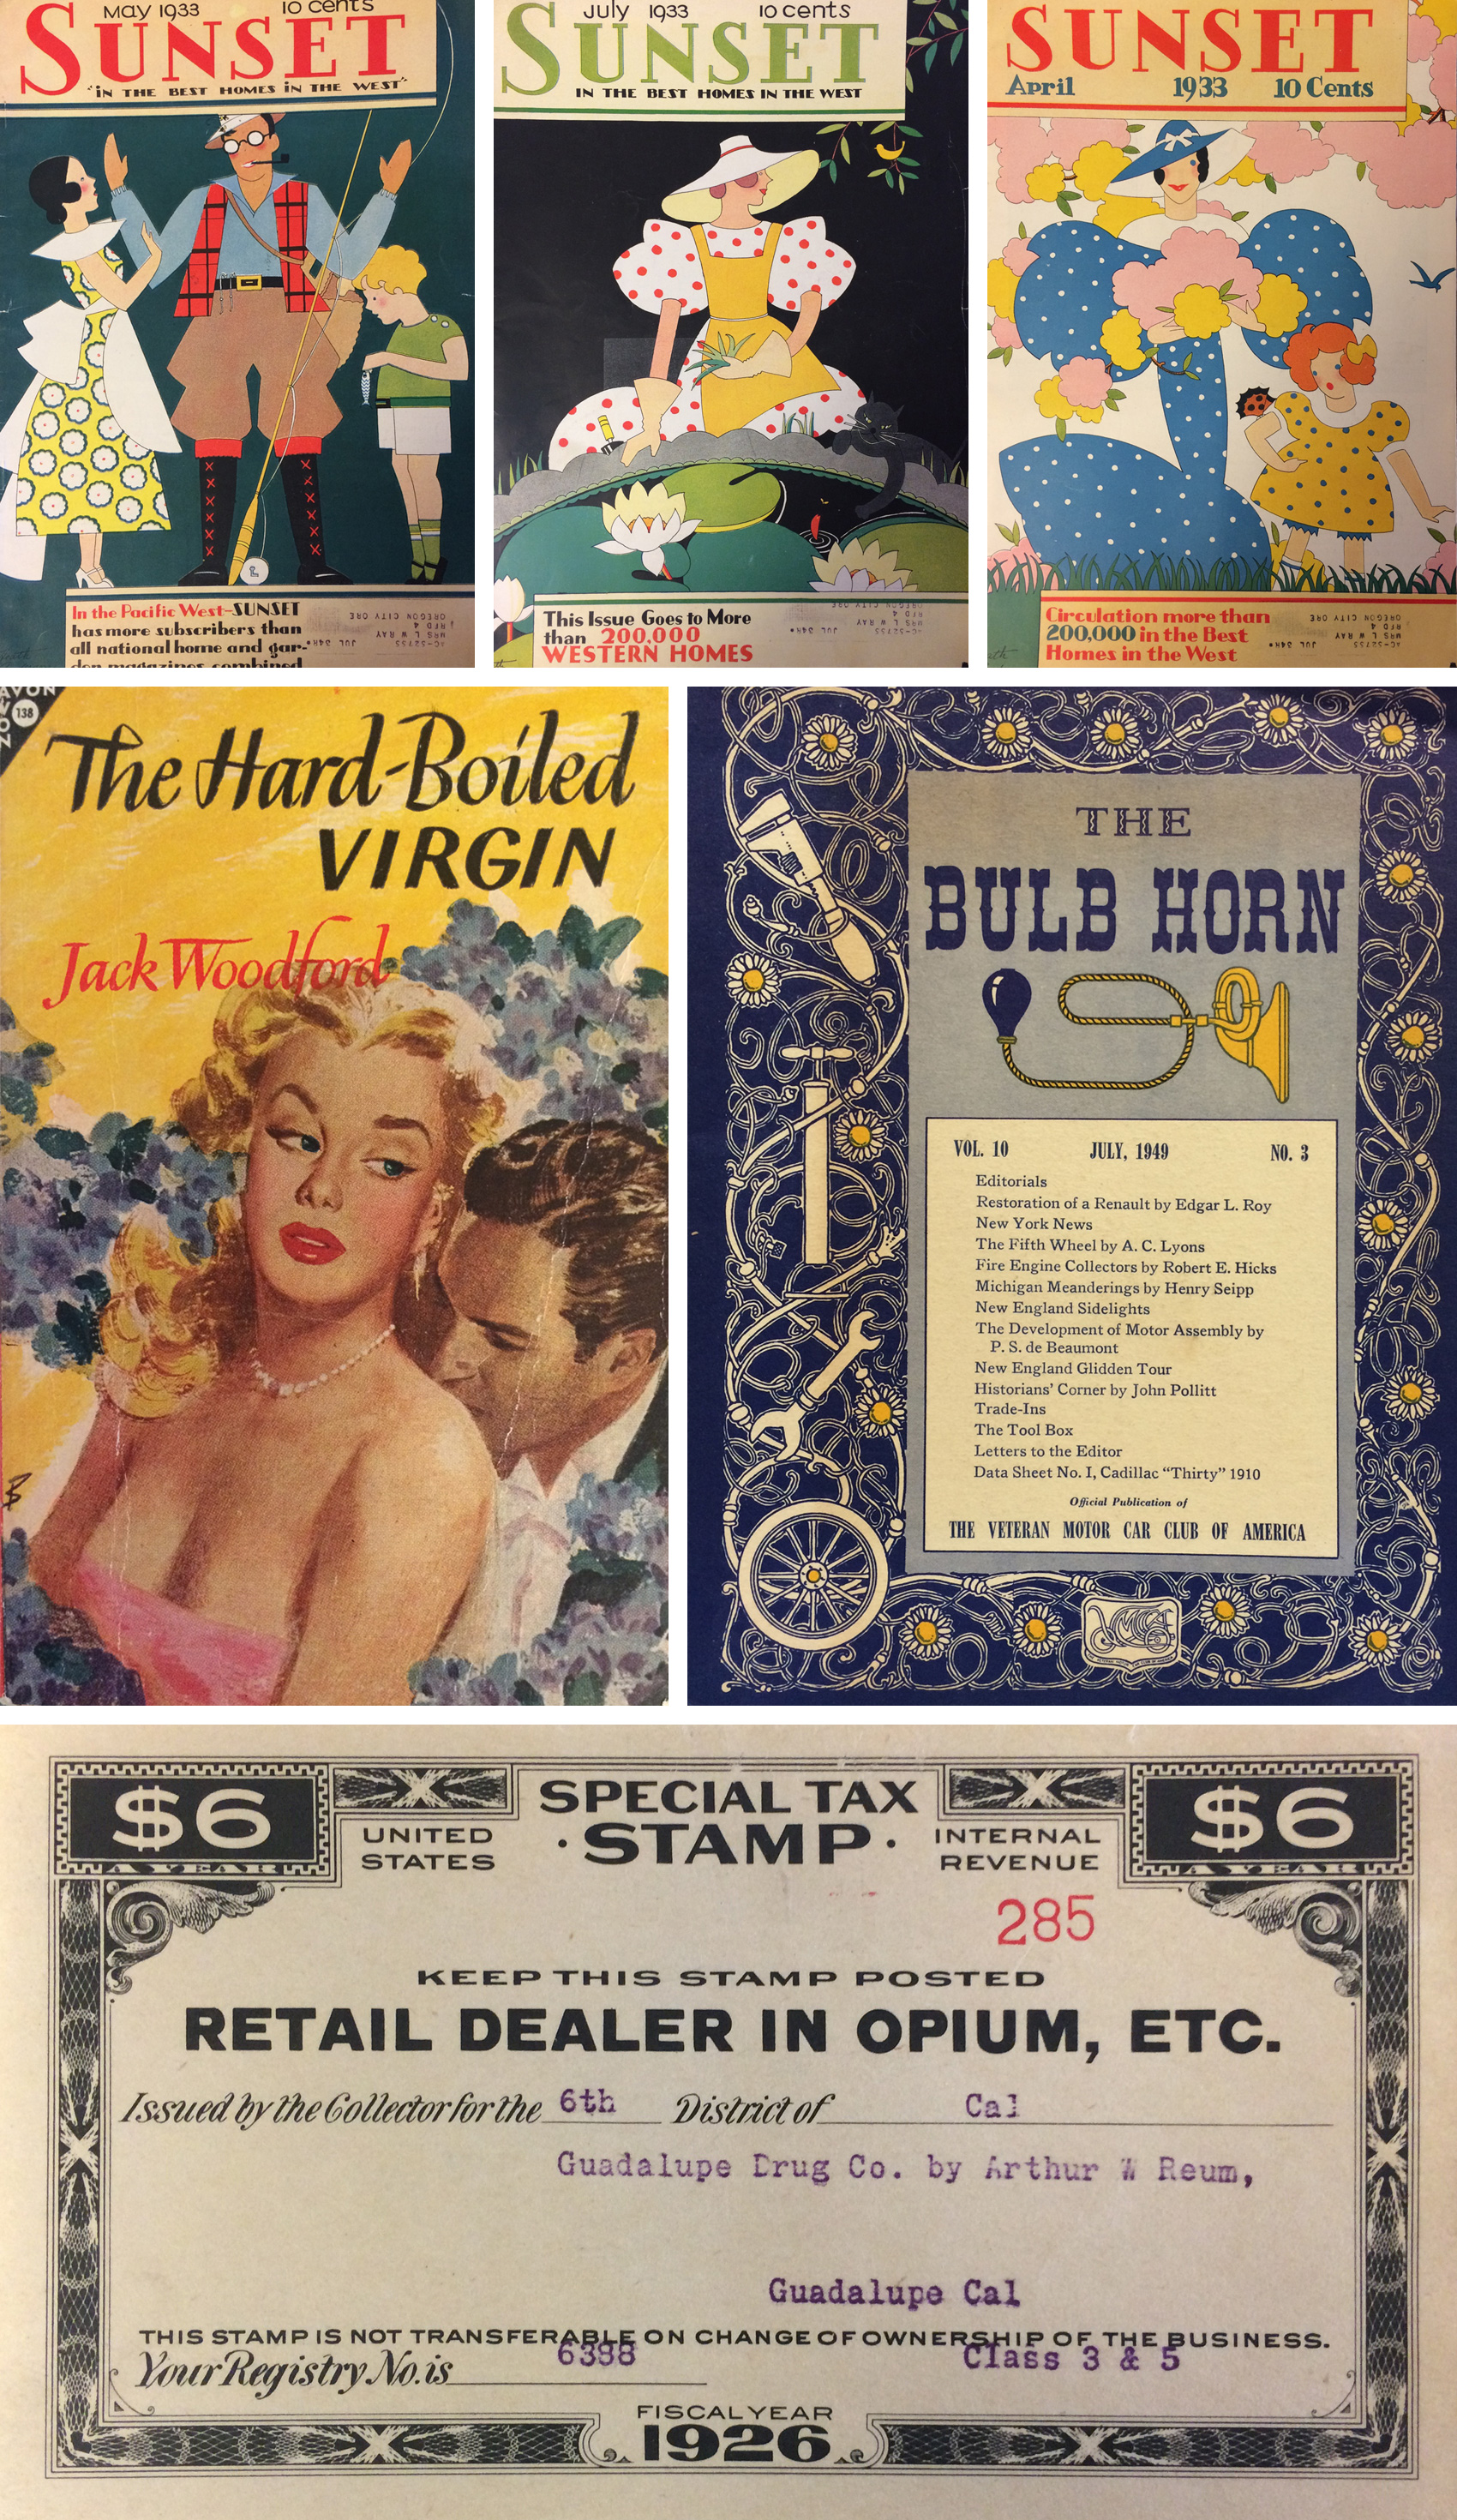 vintage sunset magazine illustrated covers from 1933, fun book covers, and a tax certificate for being a retail dealer in opium.